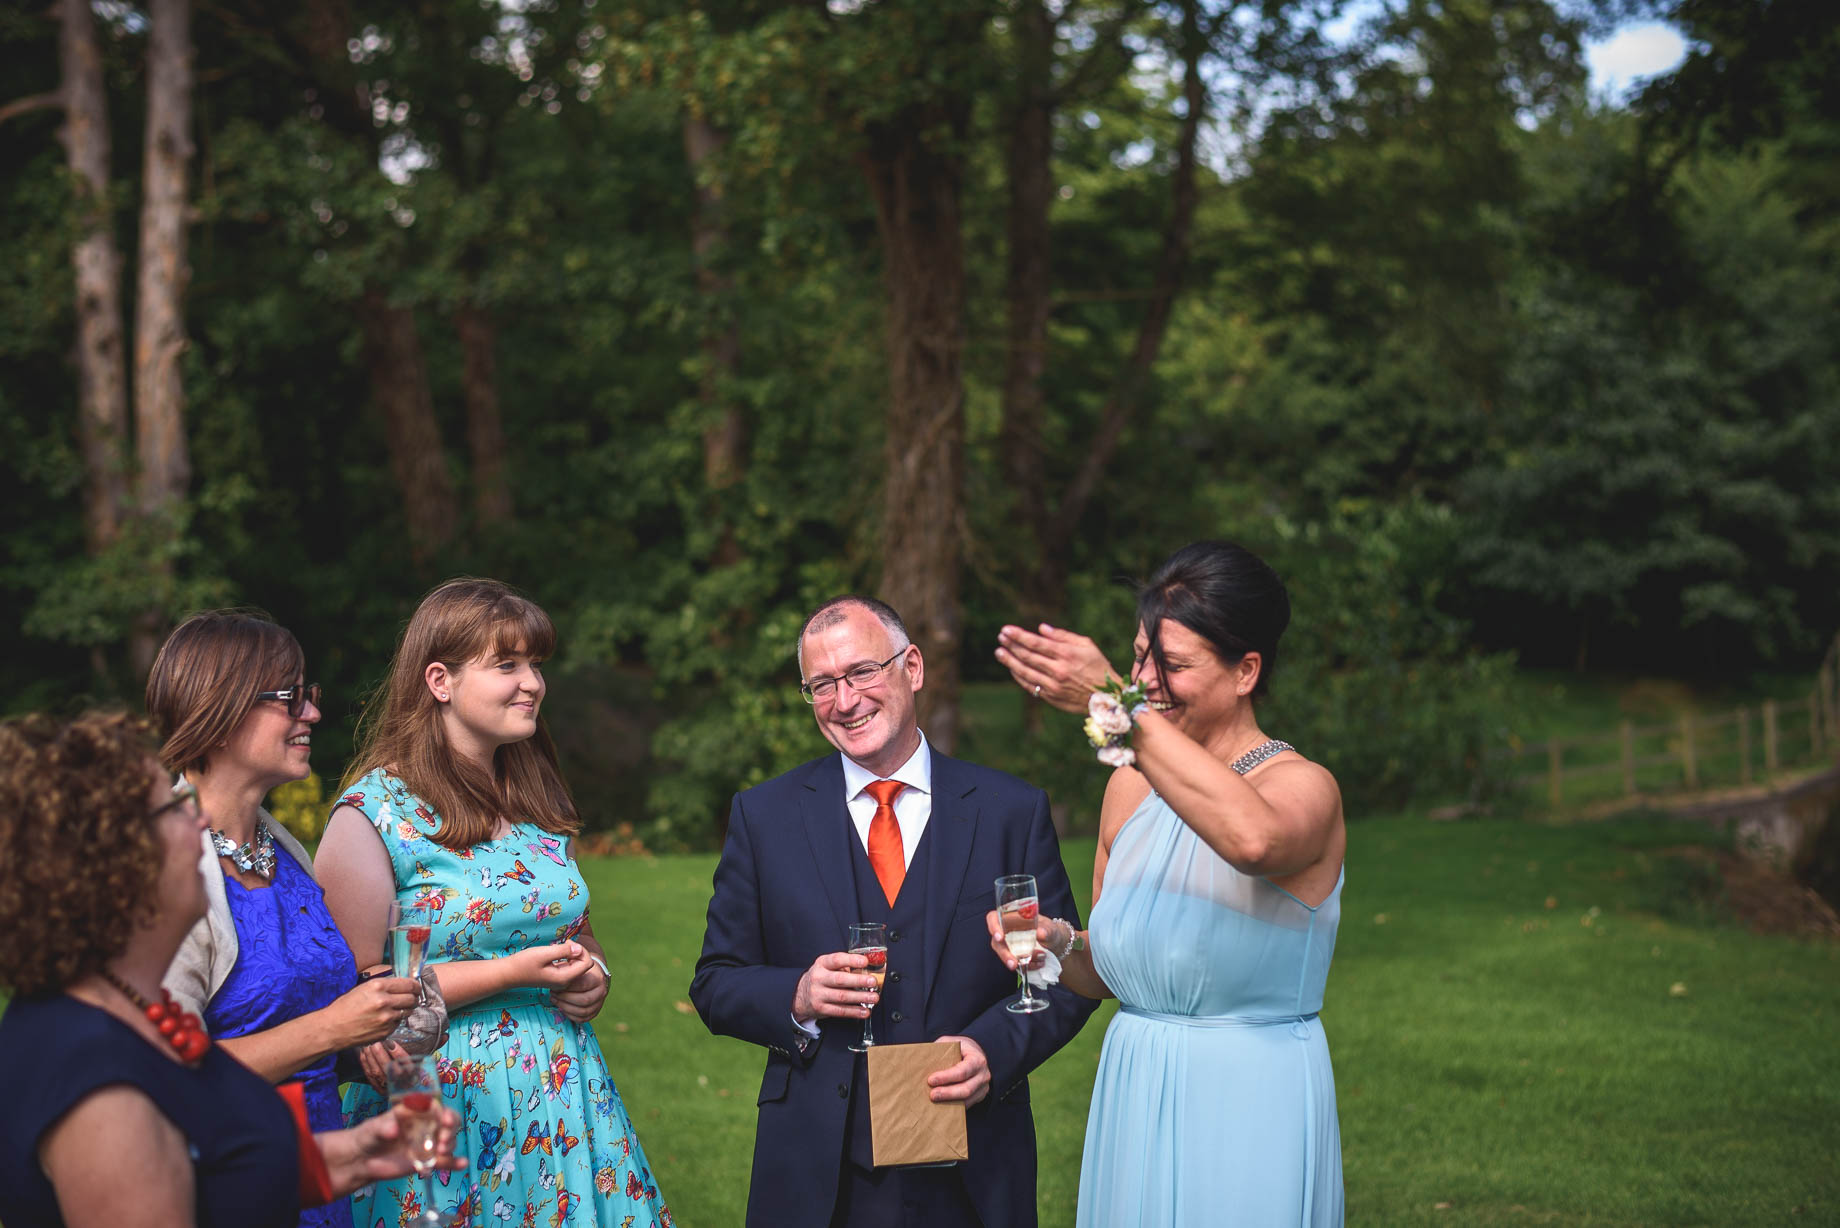 Luton Hoo wedding photography by Guy Collier Photography - Lauren and Gem (87 of 178)